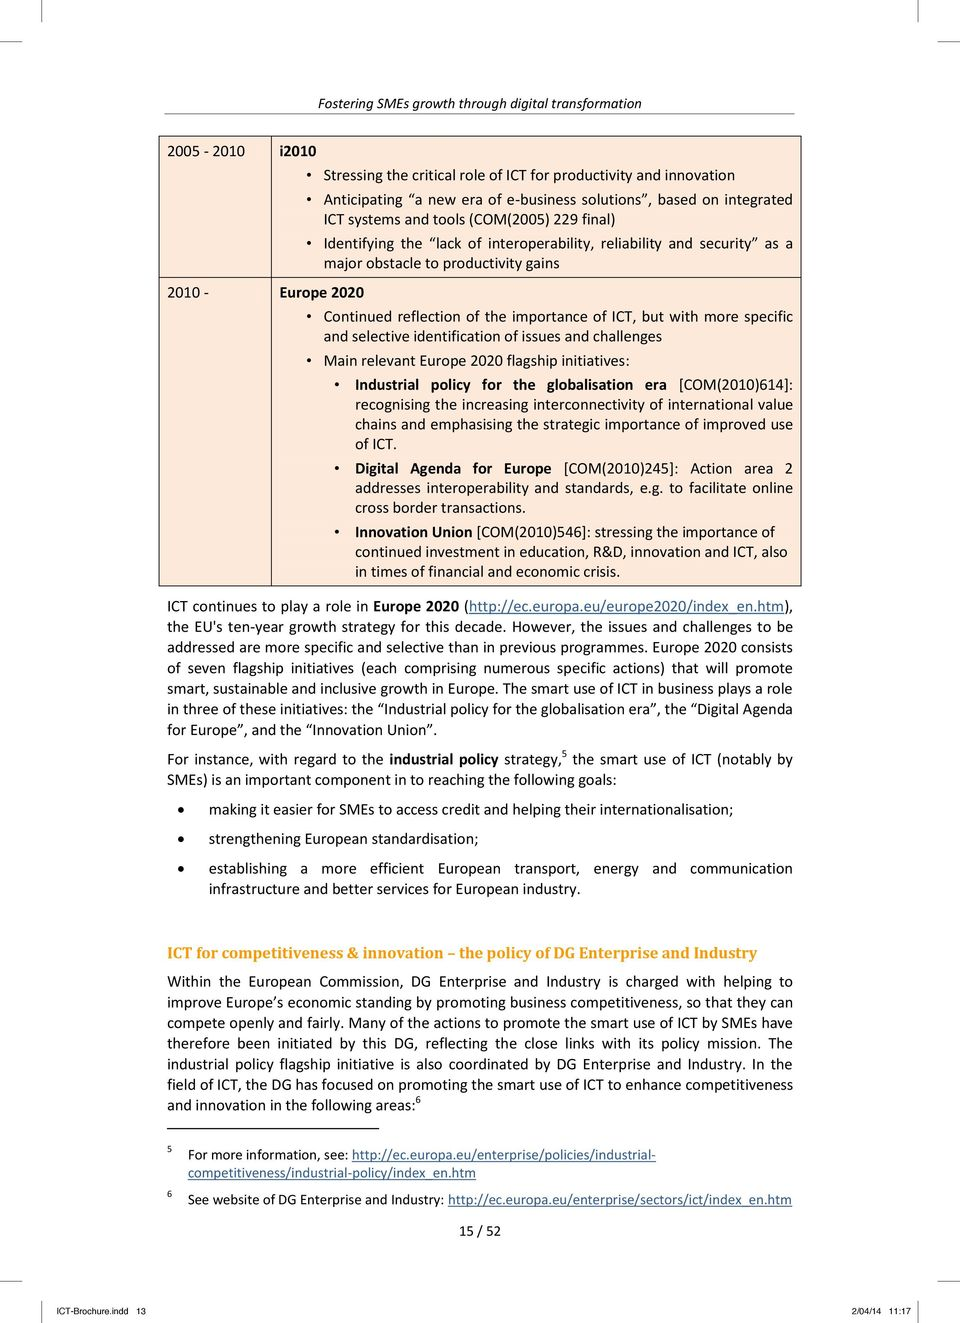 specific and selective identification of issues and challenges Main relevant Europe 2020 flagship initiatives: Industrial policy for the globalisation era [COM(2010)614]: recognising the increasing